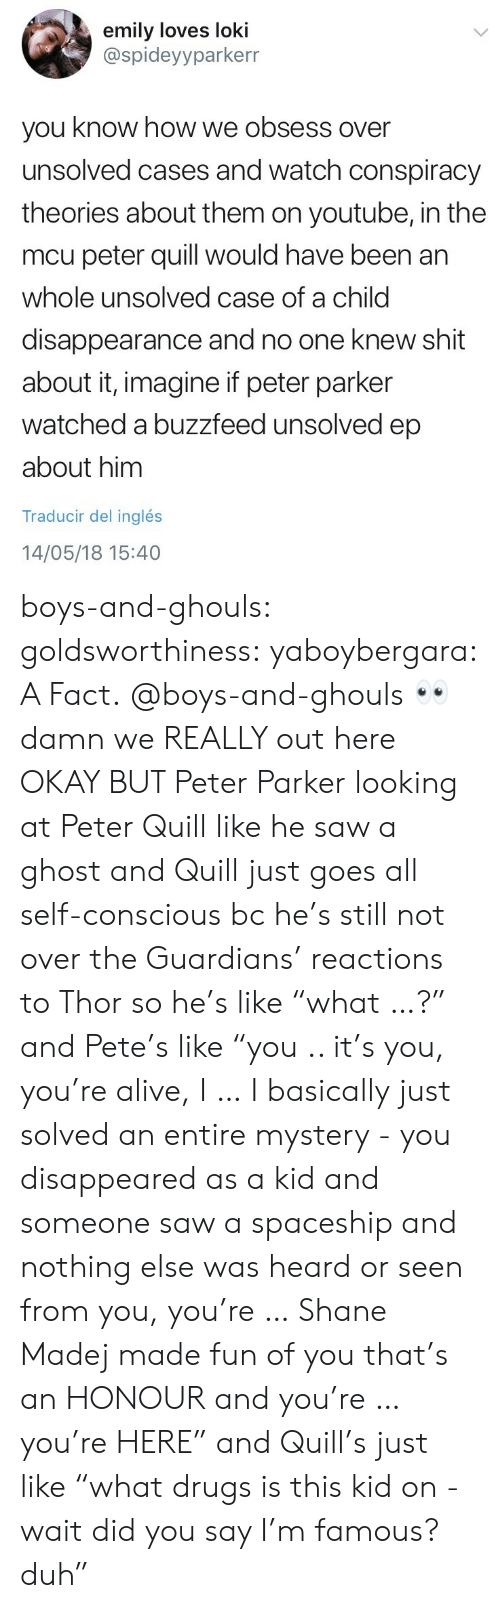 """ghouls: emily loves loki  @spideyyparkerr  you know how we obsess over  unsolved cases and watch conspiracy  theories about them on youtube, in the  mcu peter quill would have been an  whole unsolved case of a child  disappearance and no one knew shit  about it, imagine if peter parker  watched a buzzfeed unsolved ep  about him  Traducir del inglés  14/05/18 15:40 boys-and-ghouls: goldsworthiness:  yaboybergara: A Fact.  @boys-and-ghouls 👀  damn we REALLY out here OKAY BUT Peter Parker looking at Peter Quill like he saw a ghost and Quill just goes all self-conscious bc he's still not over the Guardians' reactions to Thor so he's like """"what …?"""" and Pete's like """"you .. it's you, you're alive, I … I basically just solved an entire mystery - you disappeared as a kid and someone saw a spaceship and nothing else was heard or seen from you, you're … Shane Madej made fun of you that's an HONOUR and you're … you're HERE"""" and Quill's just like """"what drugs is this kid on - wait did you say I'm famous? duh"""""""